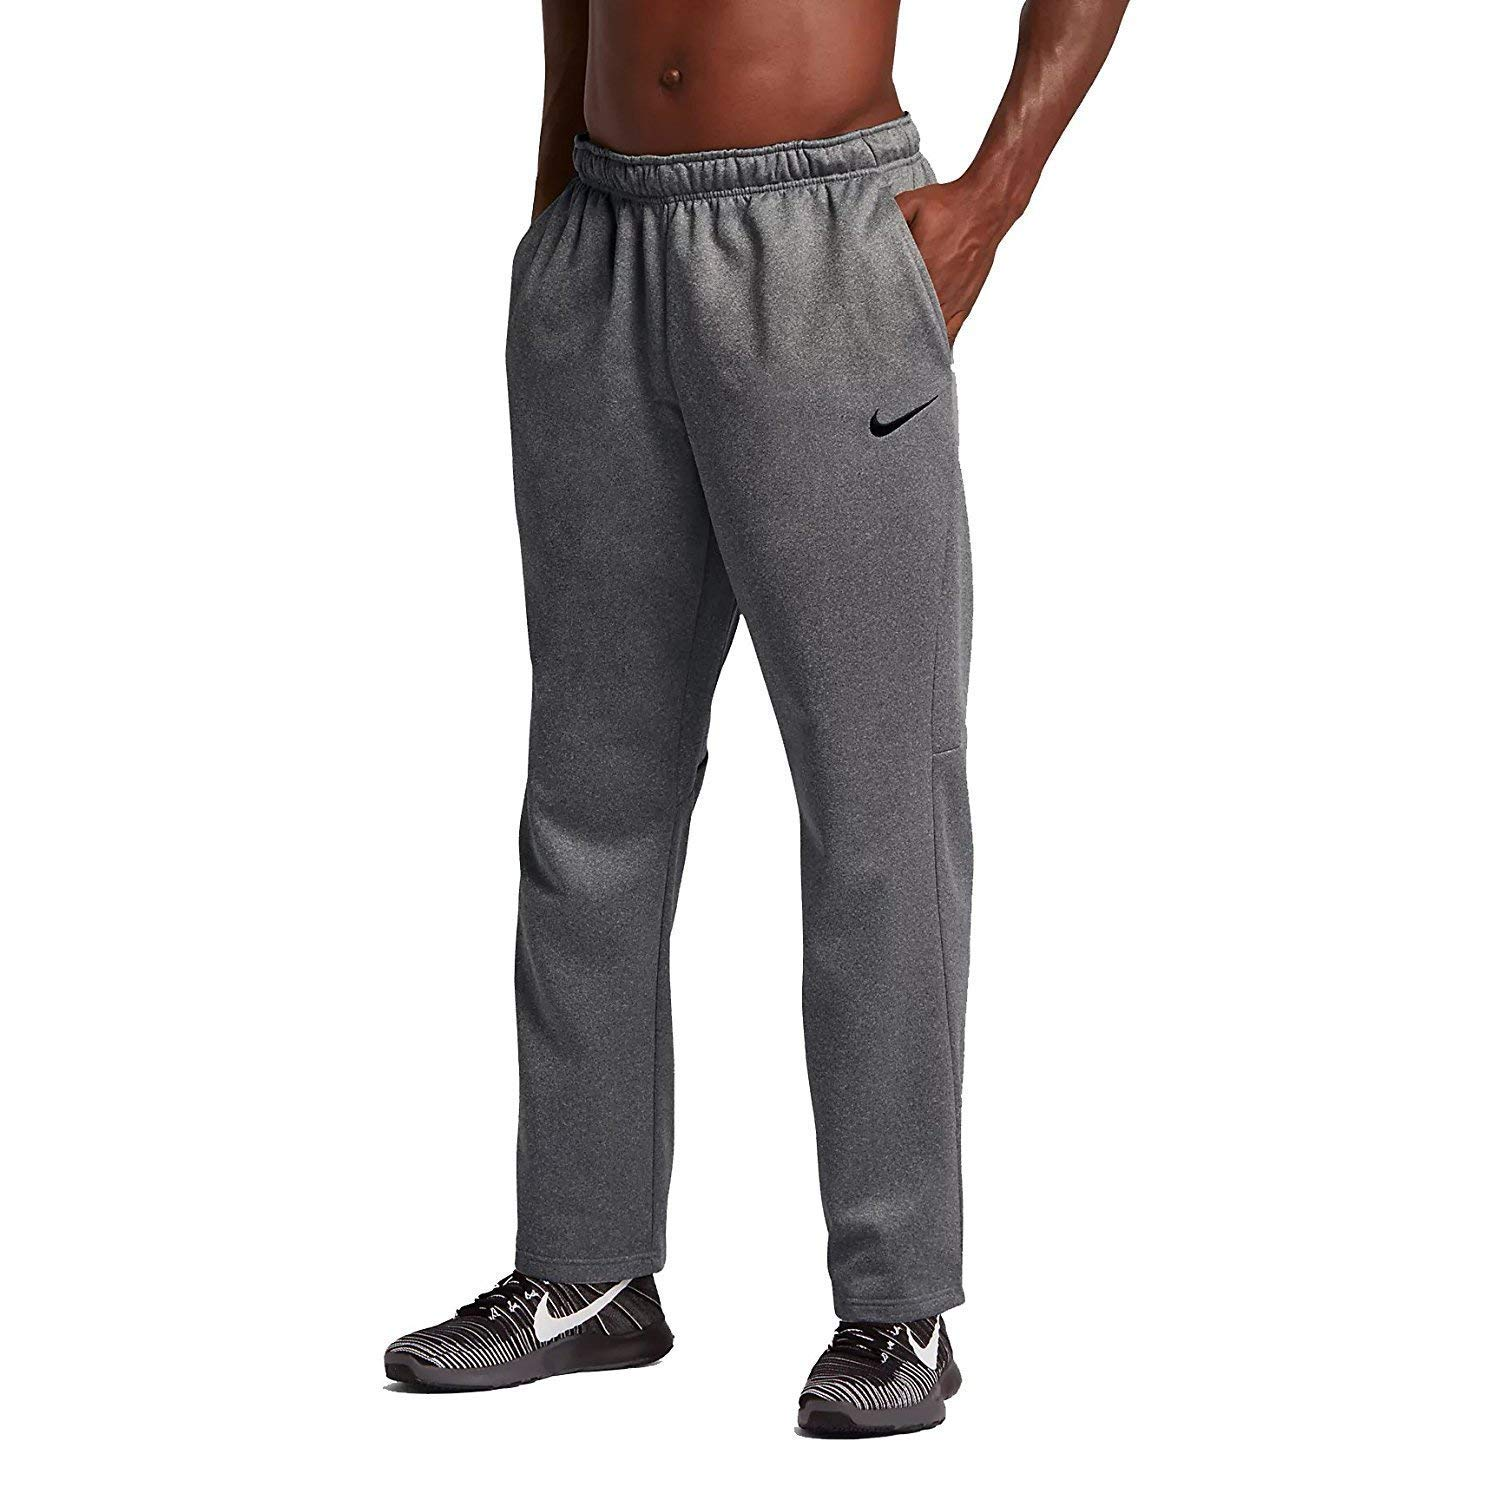 8ee5e16f6a5b Nike mens therma fit sweat pants gray sports outdoors jpg 1500x1500 Nike  therma fit pants